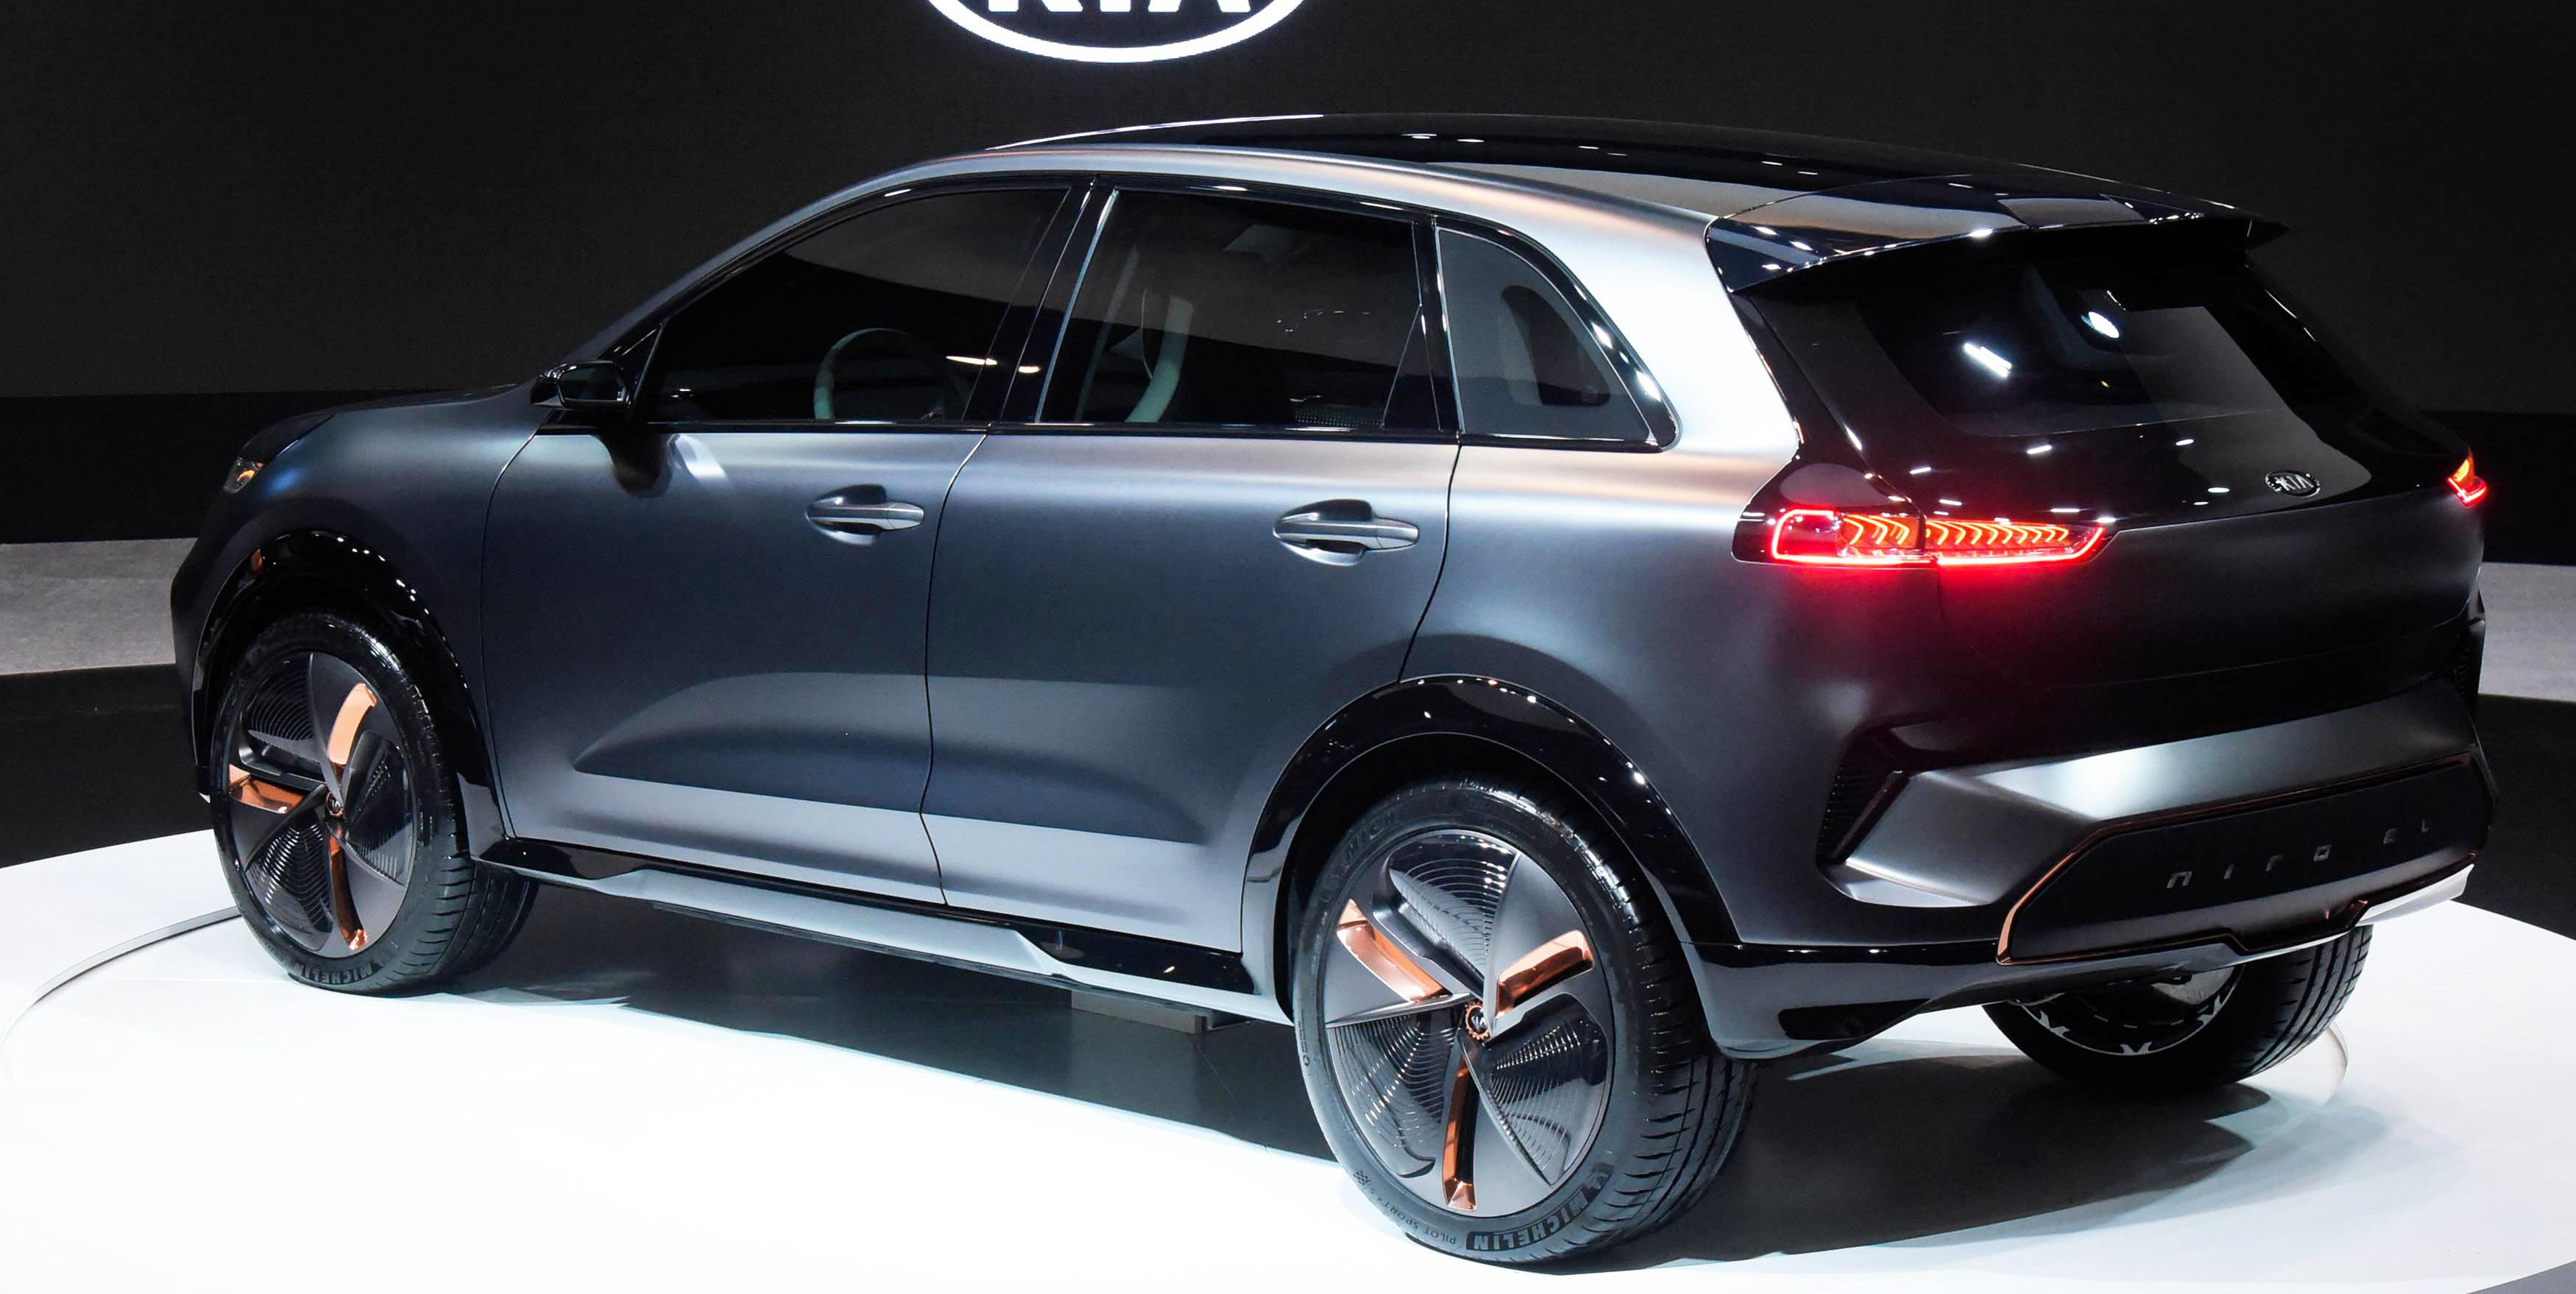 Kia Unveils New All Electric Compact Suv Concept Ahead Of Niro Ev 09 Electrics Boundless For Presents Vision Future Mobility At Ces 2018